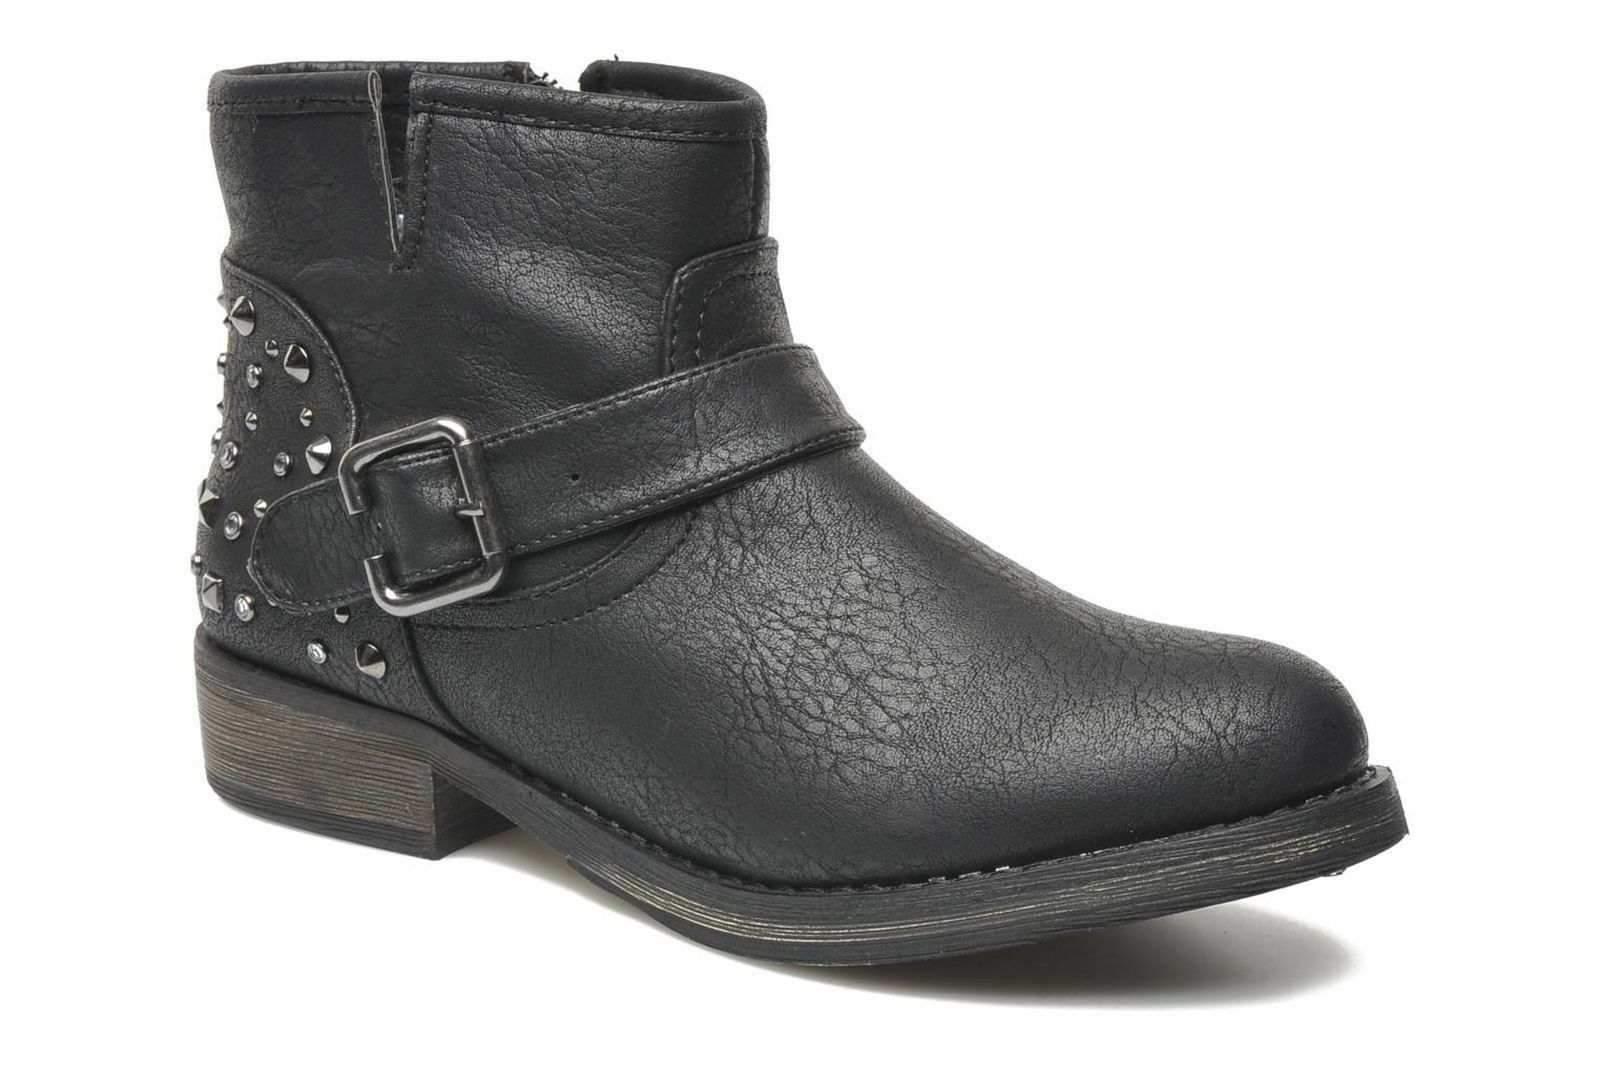 New! Skechers Womens Accented Toughy Ankle Boots-Style 48257-Black  92H p/l